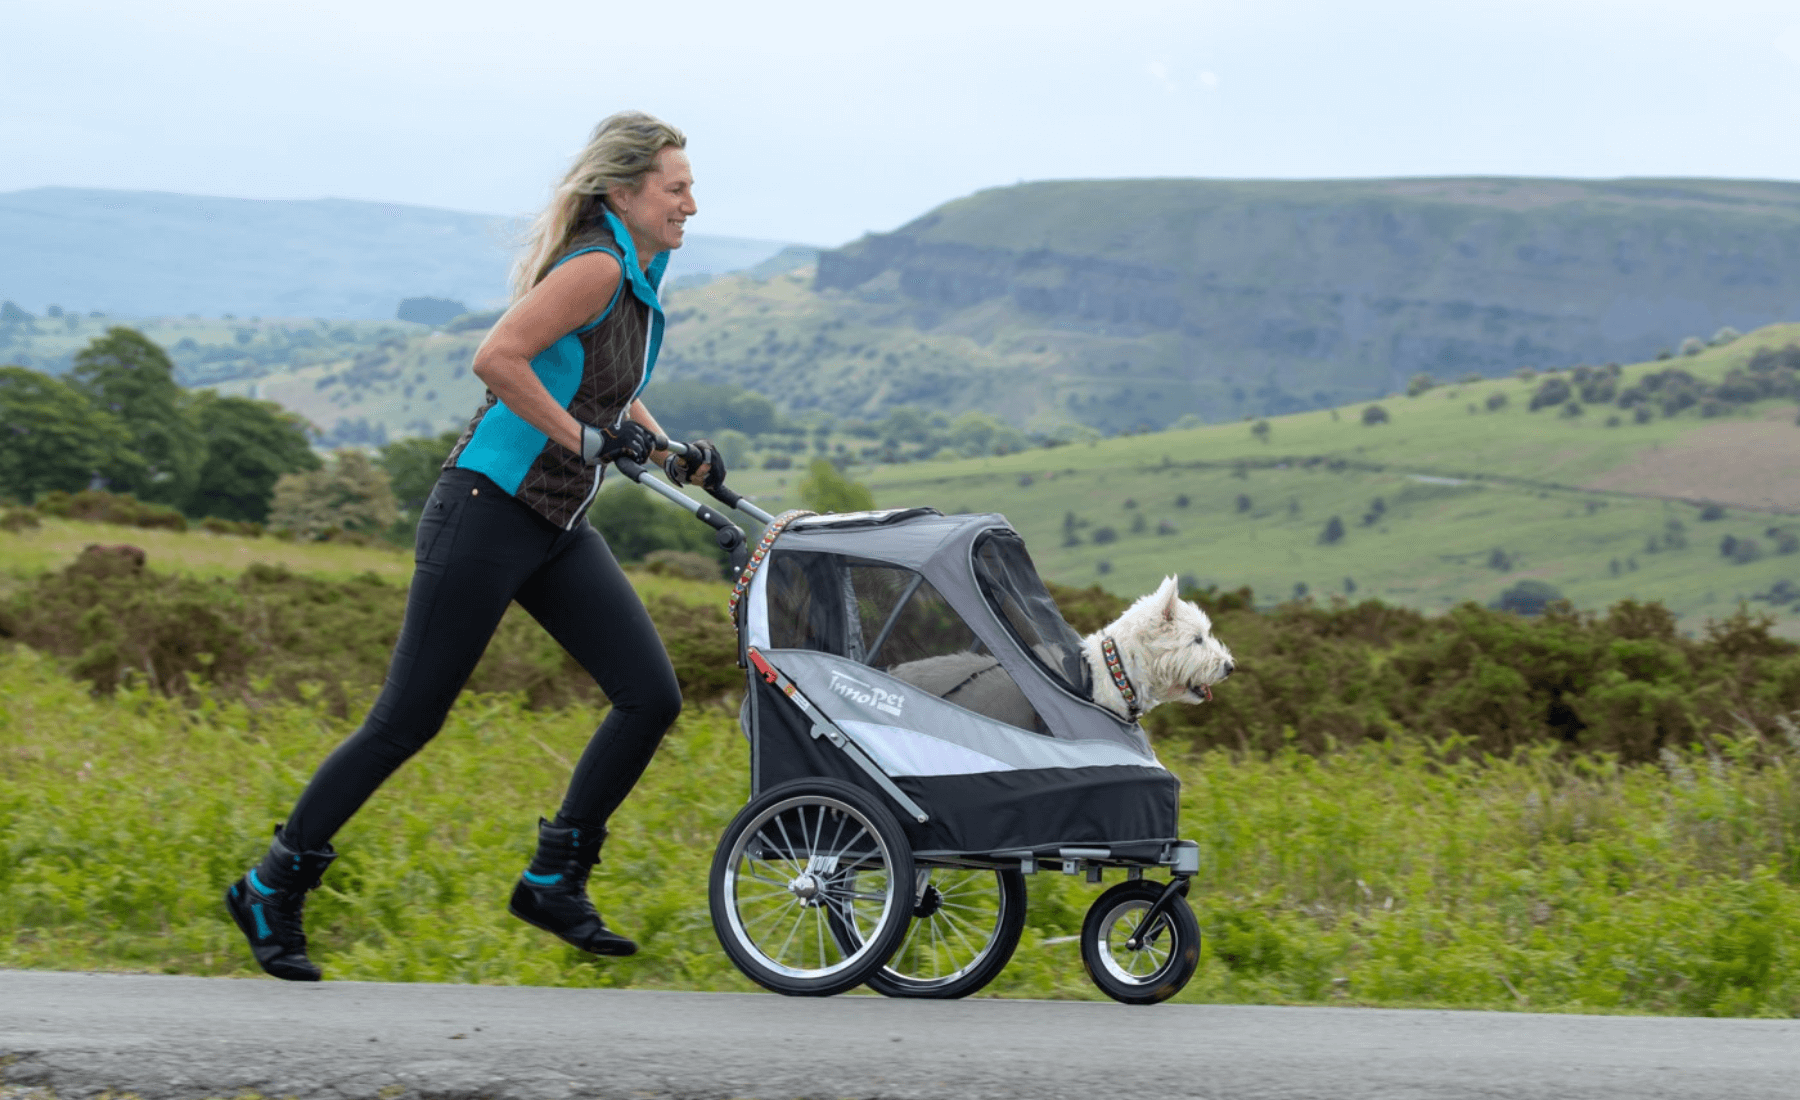 All Terrain Dog Buggy Comparison- Best Dog Pram 2020 in the UK - PetsOwnUs